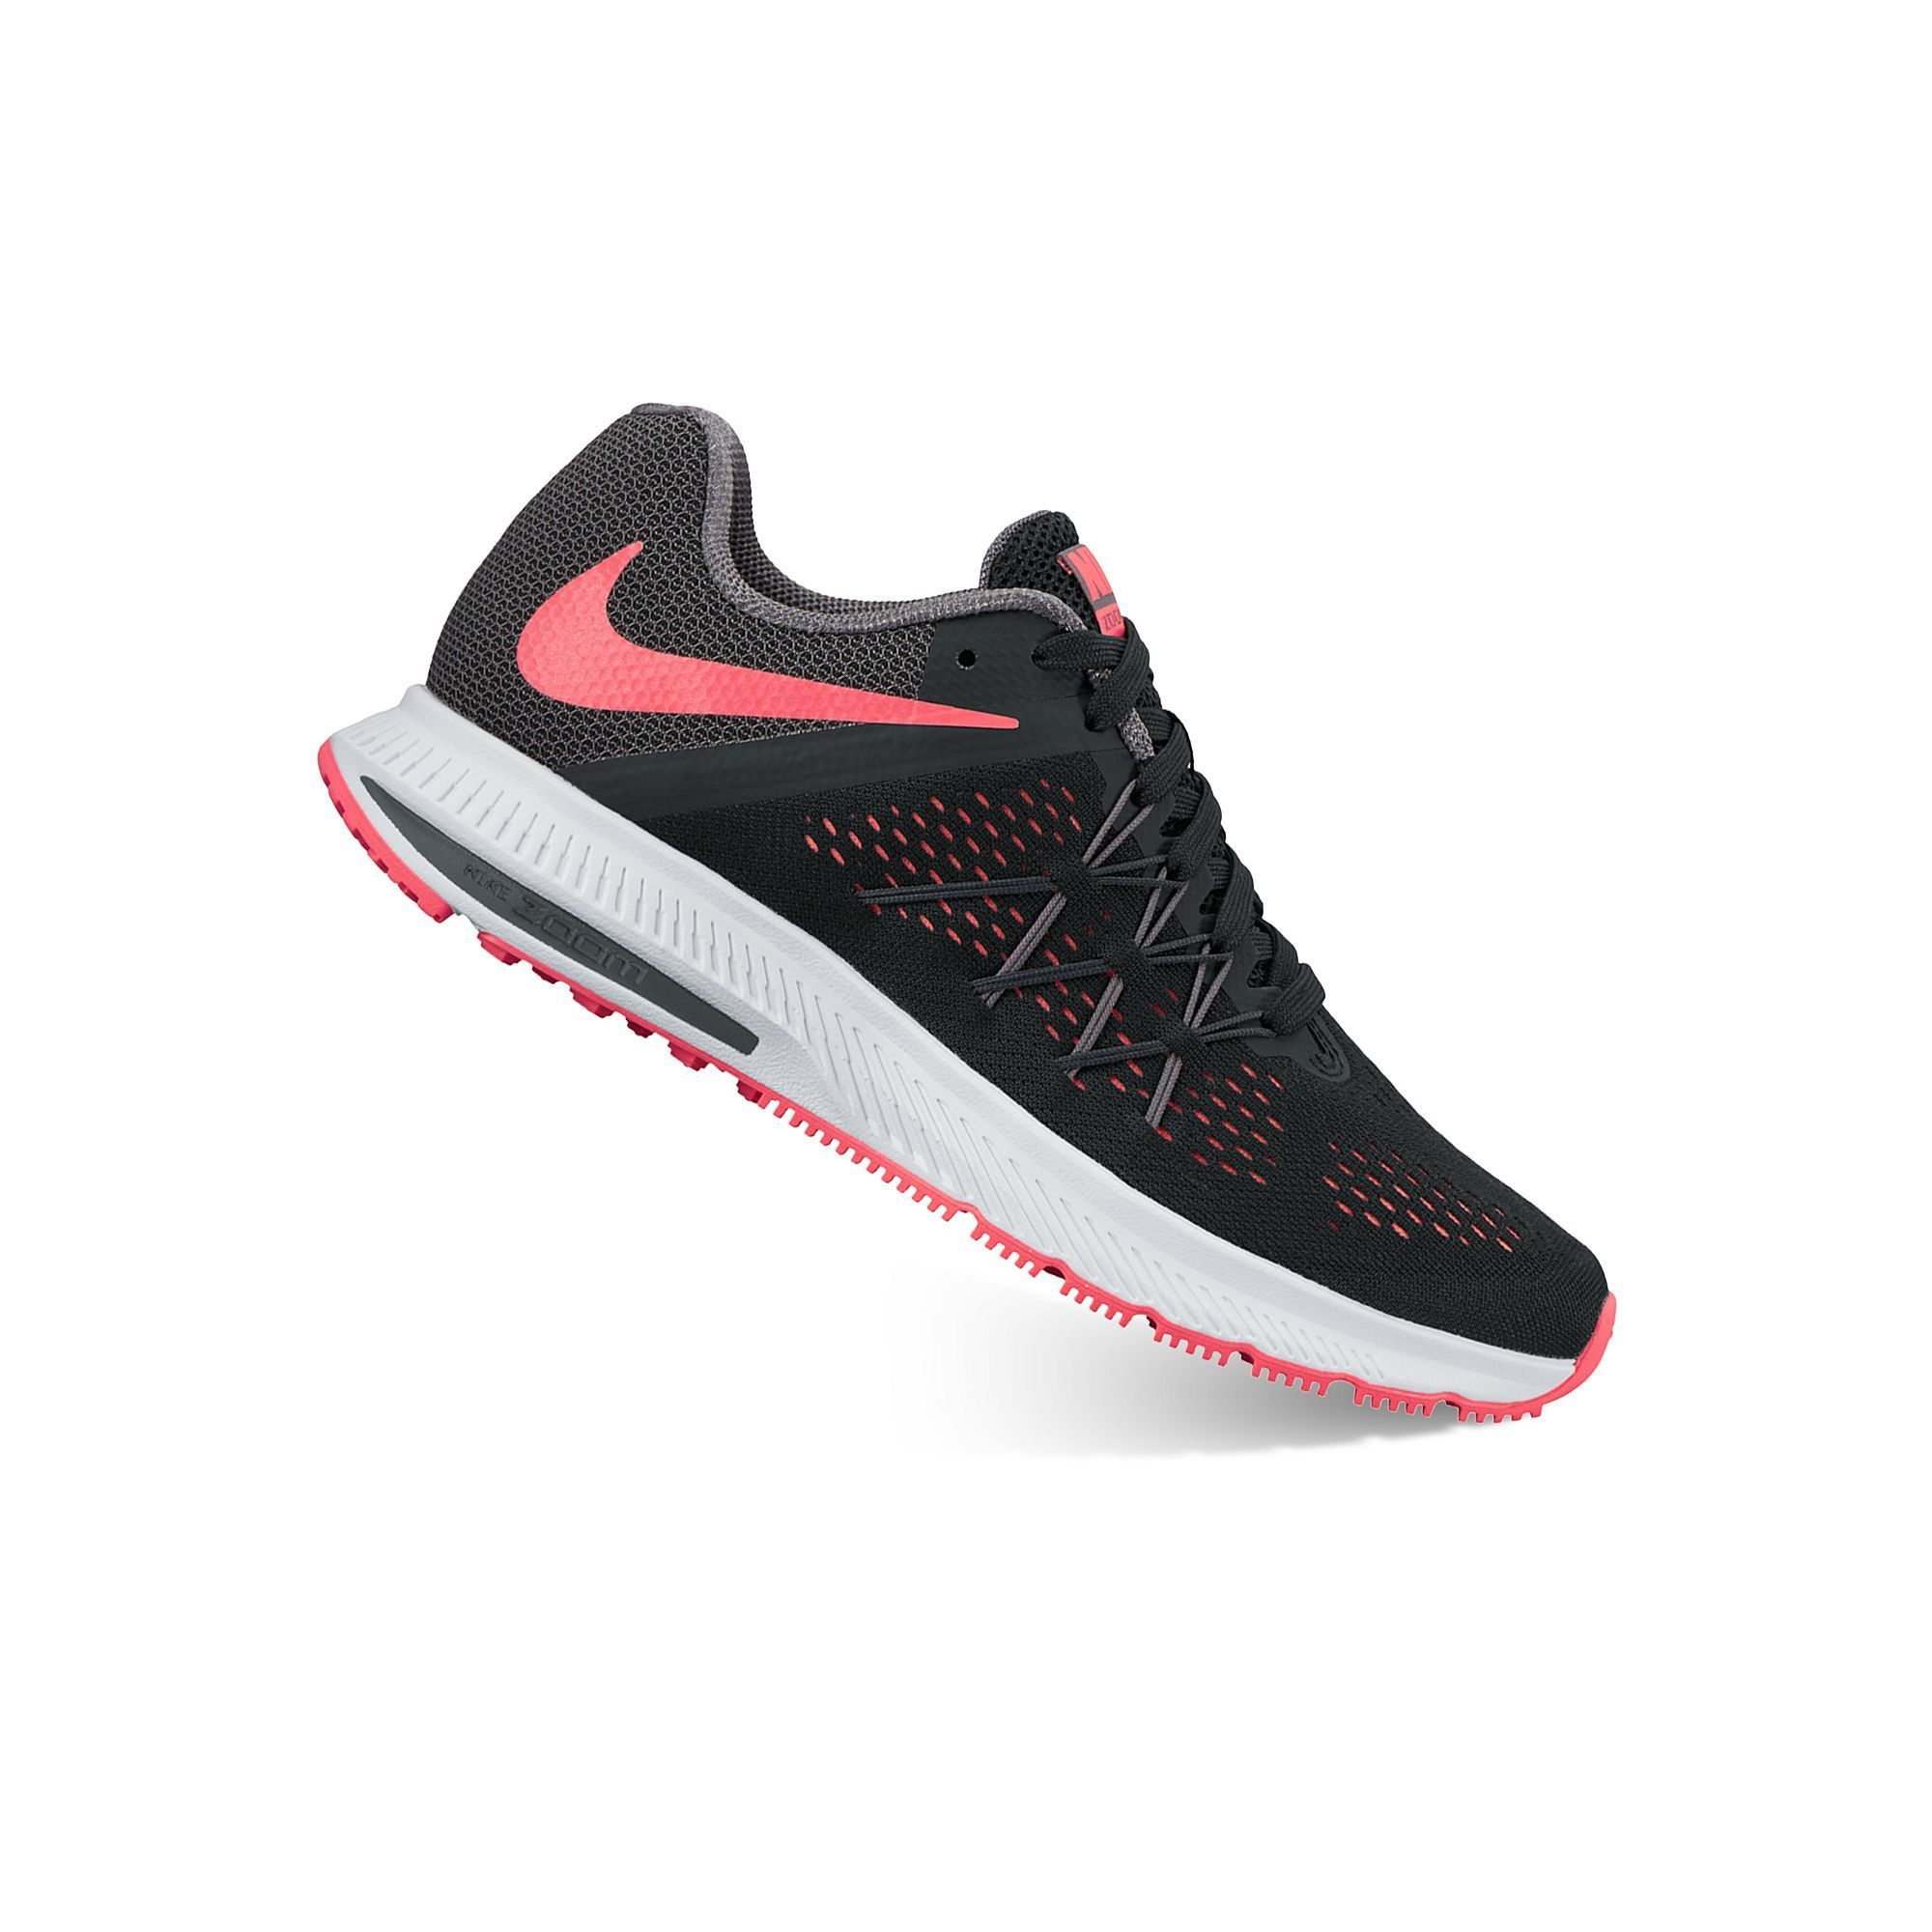 6e938c5822c Nike Zoom Winflo 3 Women s Running Shoes